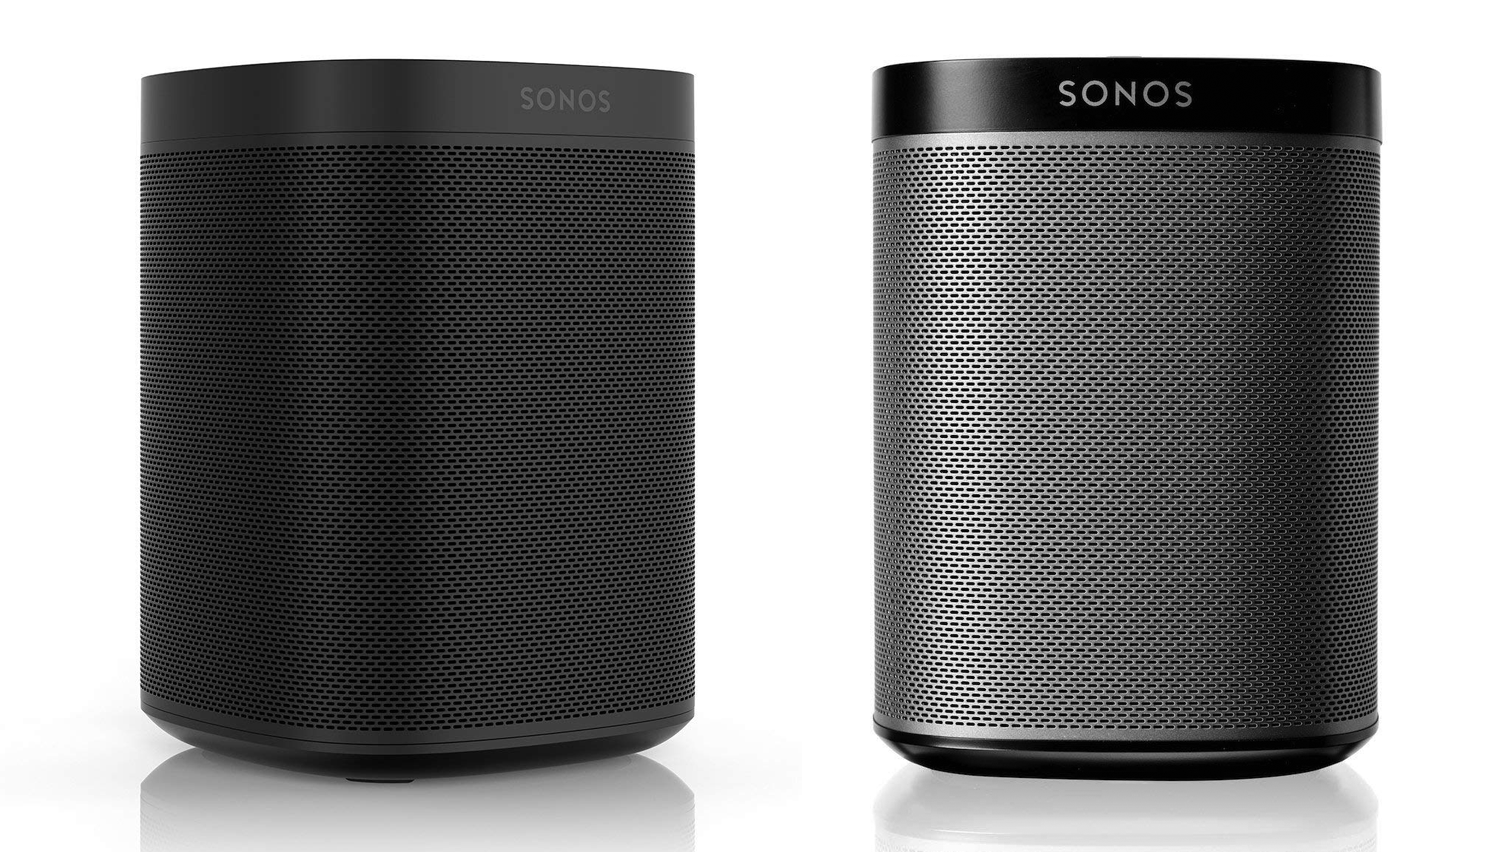 sonos, sonos one, play:1, wifi speaker, whole home audio,